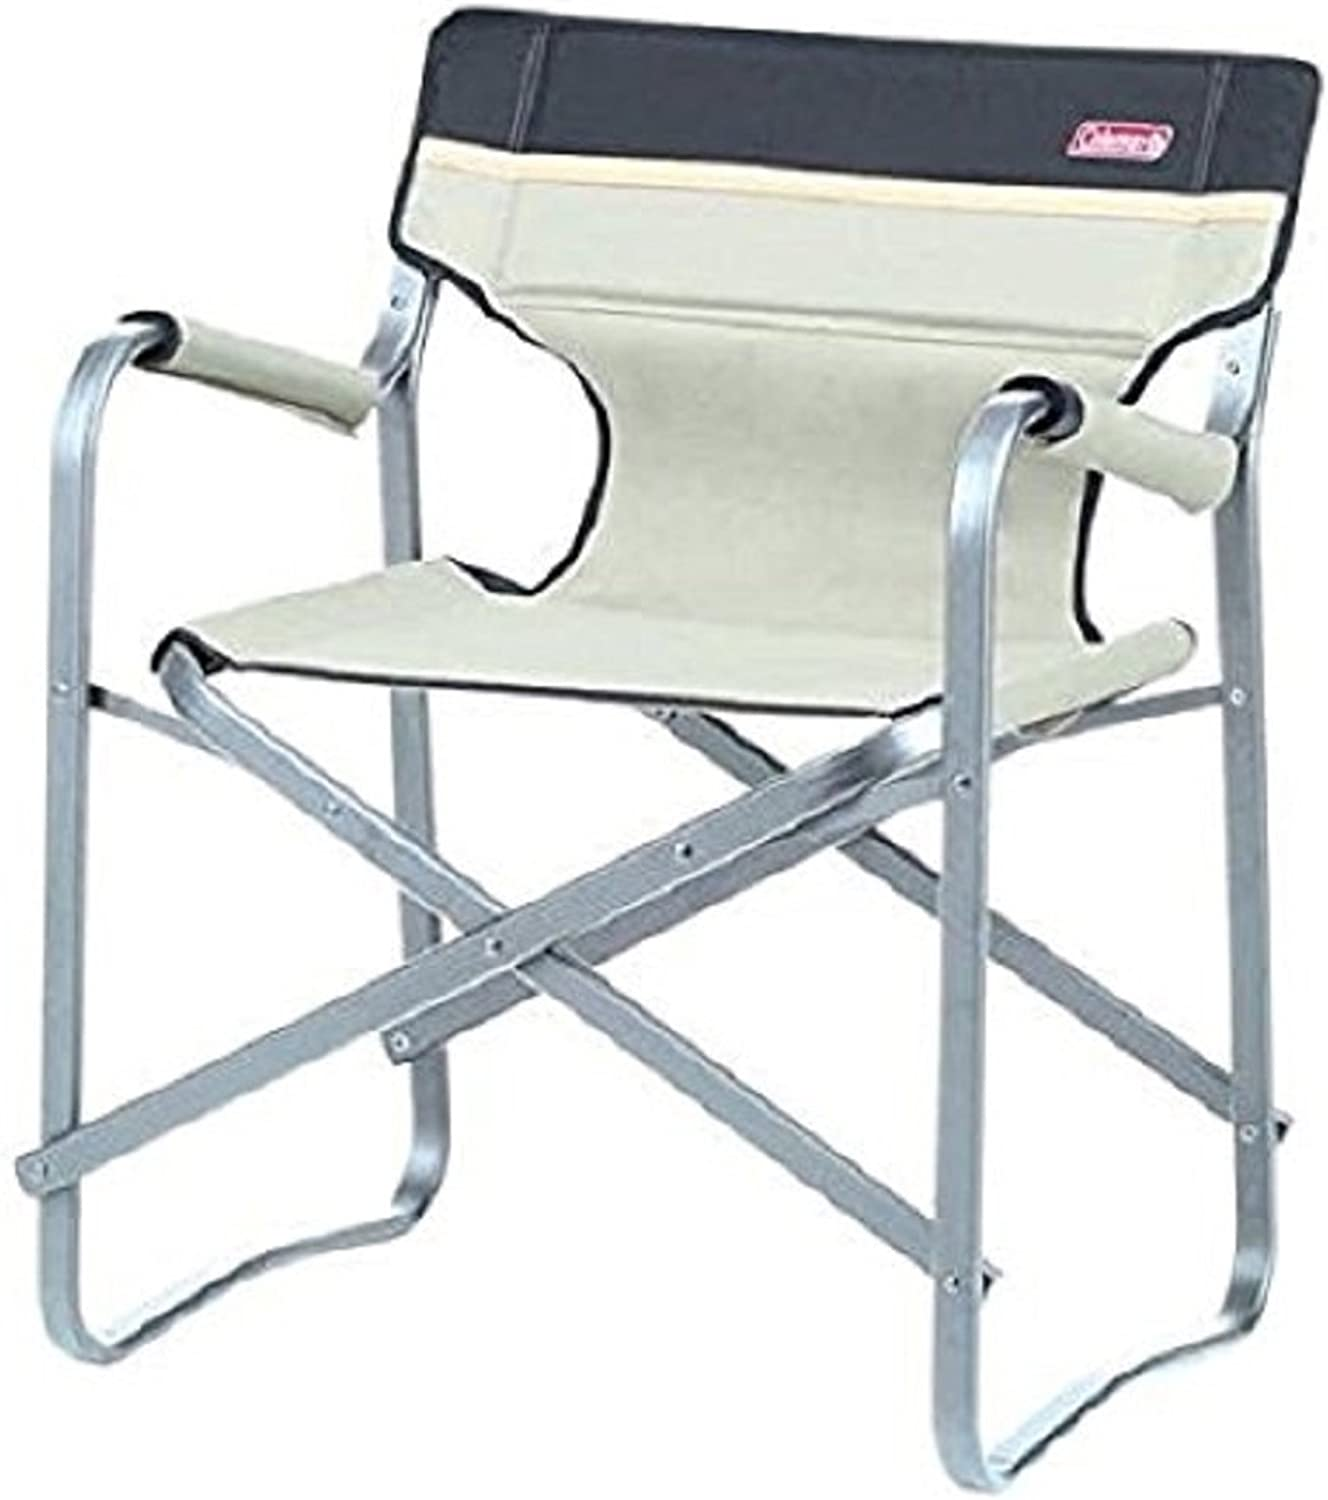 COLEMAN FOLDING DECK CHAIR (KHAKI)